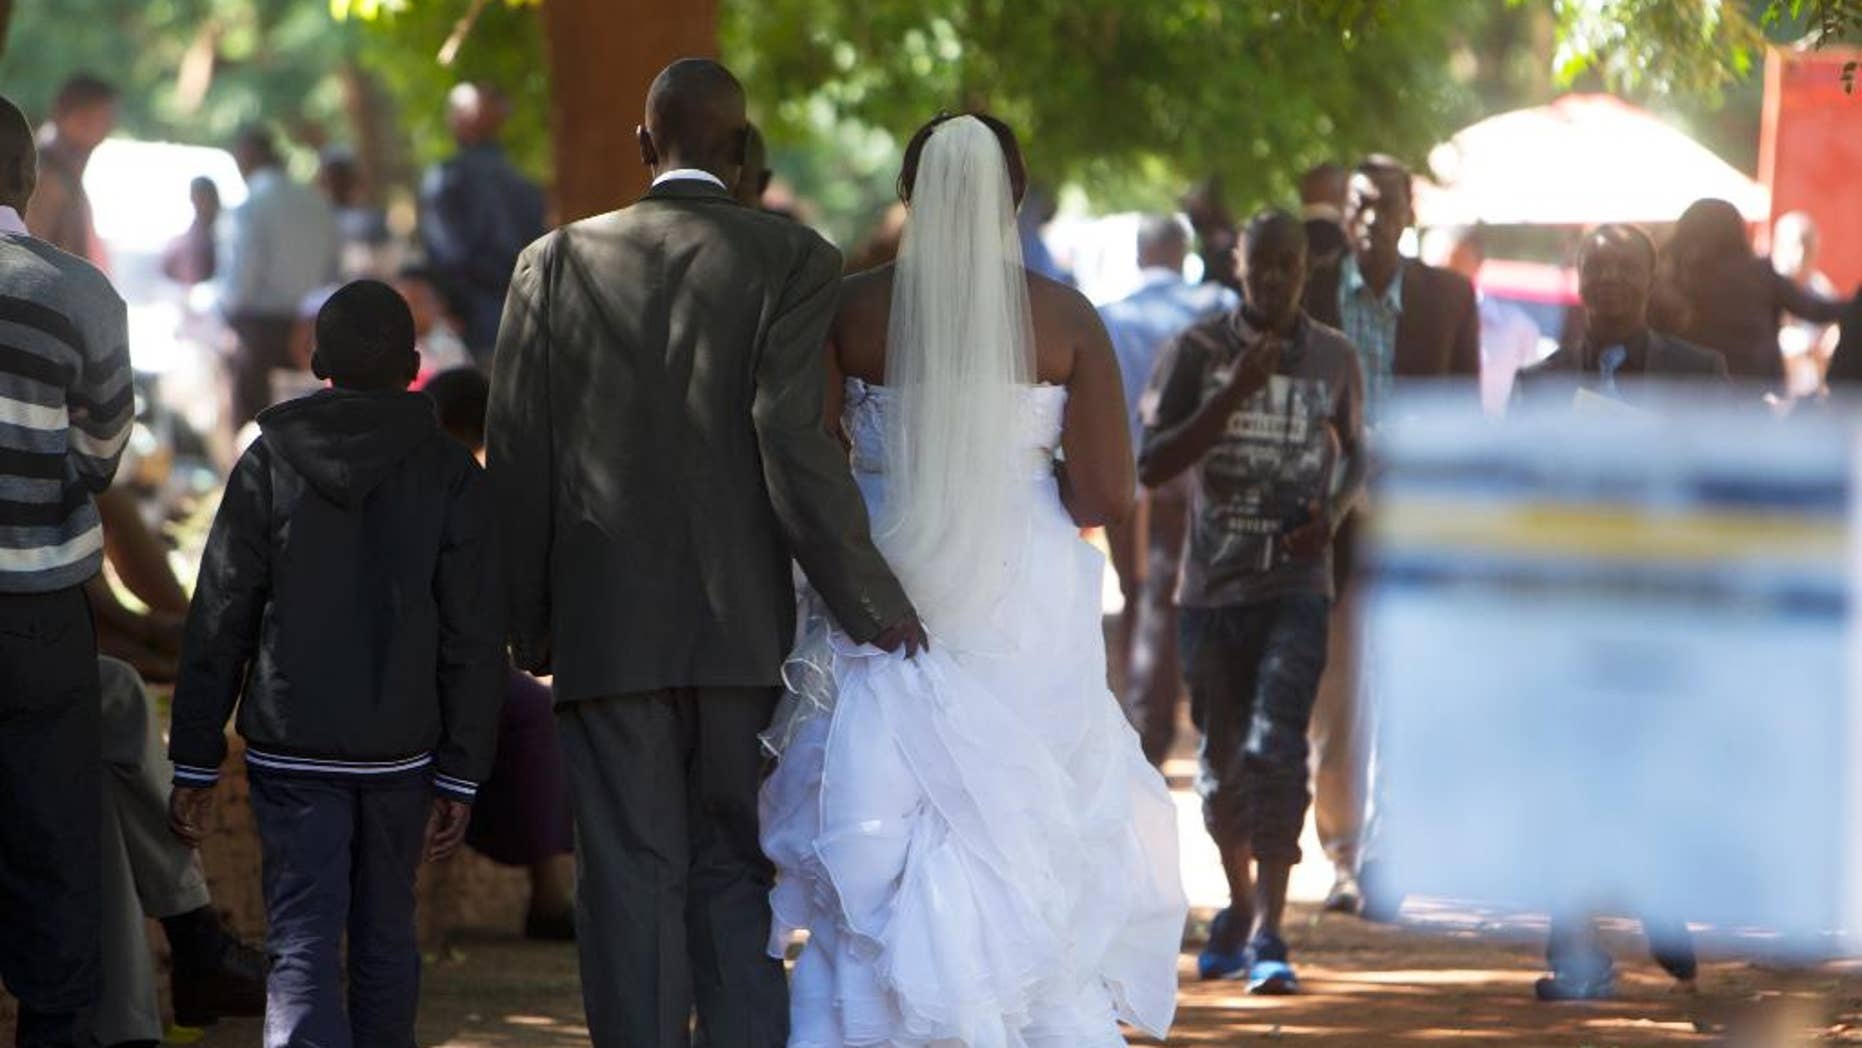 """A couple leaves the magistrates courts after tying the knot in Harare, Tuesday, January, 24, 2017.For many Zimbabwean women, the death of a husband means much more than loosing a spouse. What follows is usually a rush by in laws for property, stripping the widow and her children bare, a phenomenon described by Human Rights Watch in a report launched Tuesday as """"profound injustice"""". (AP Photo/Tsvangirayi Mukwazhi)"""